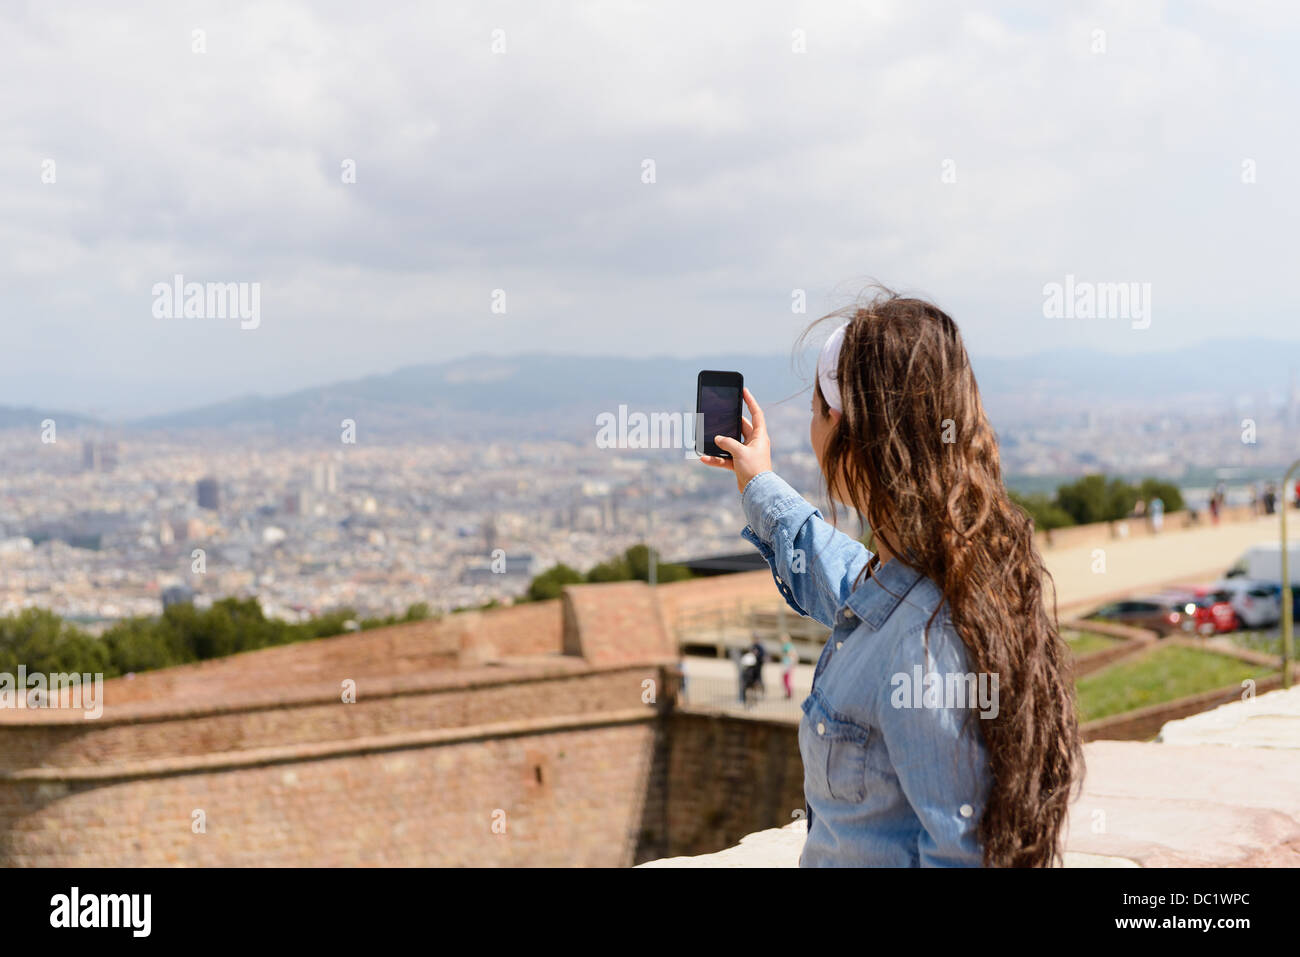 Young female tourist photographing view of Barcelona city, Spain - Stock Image